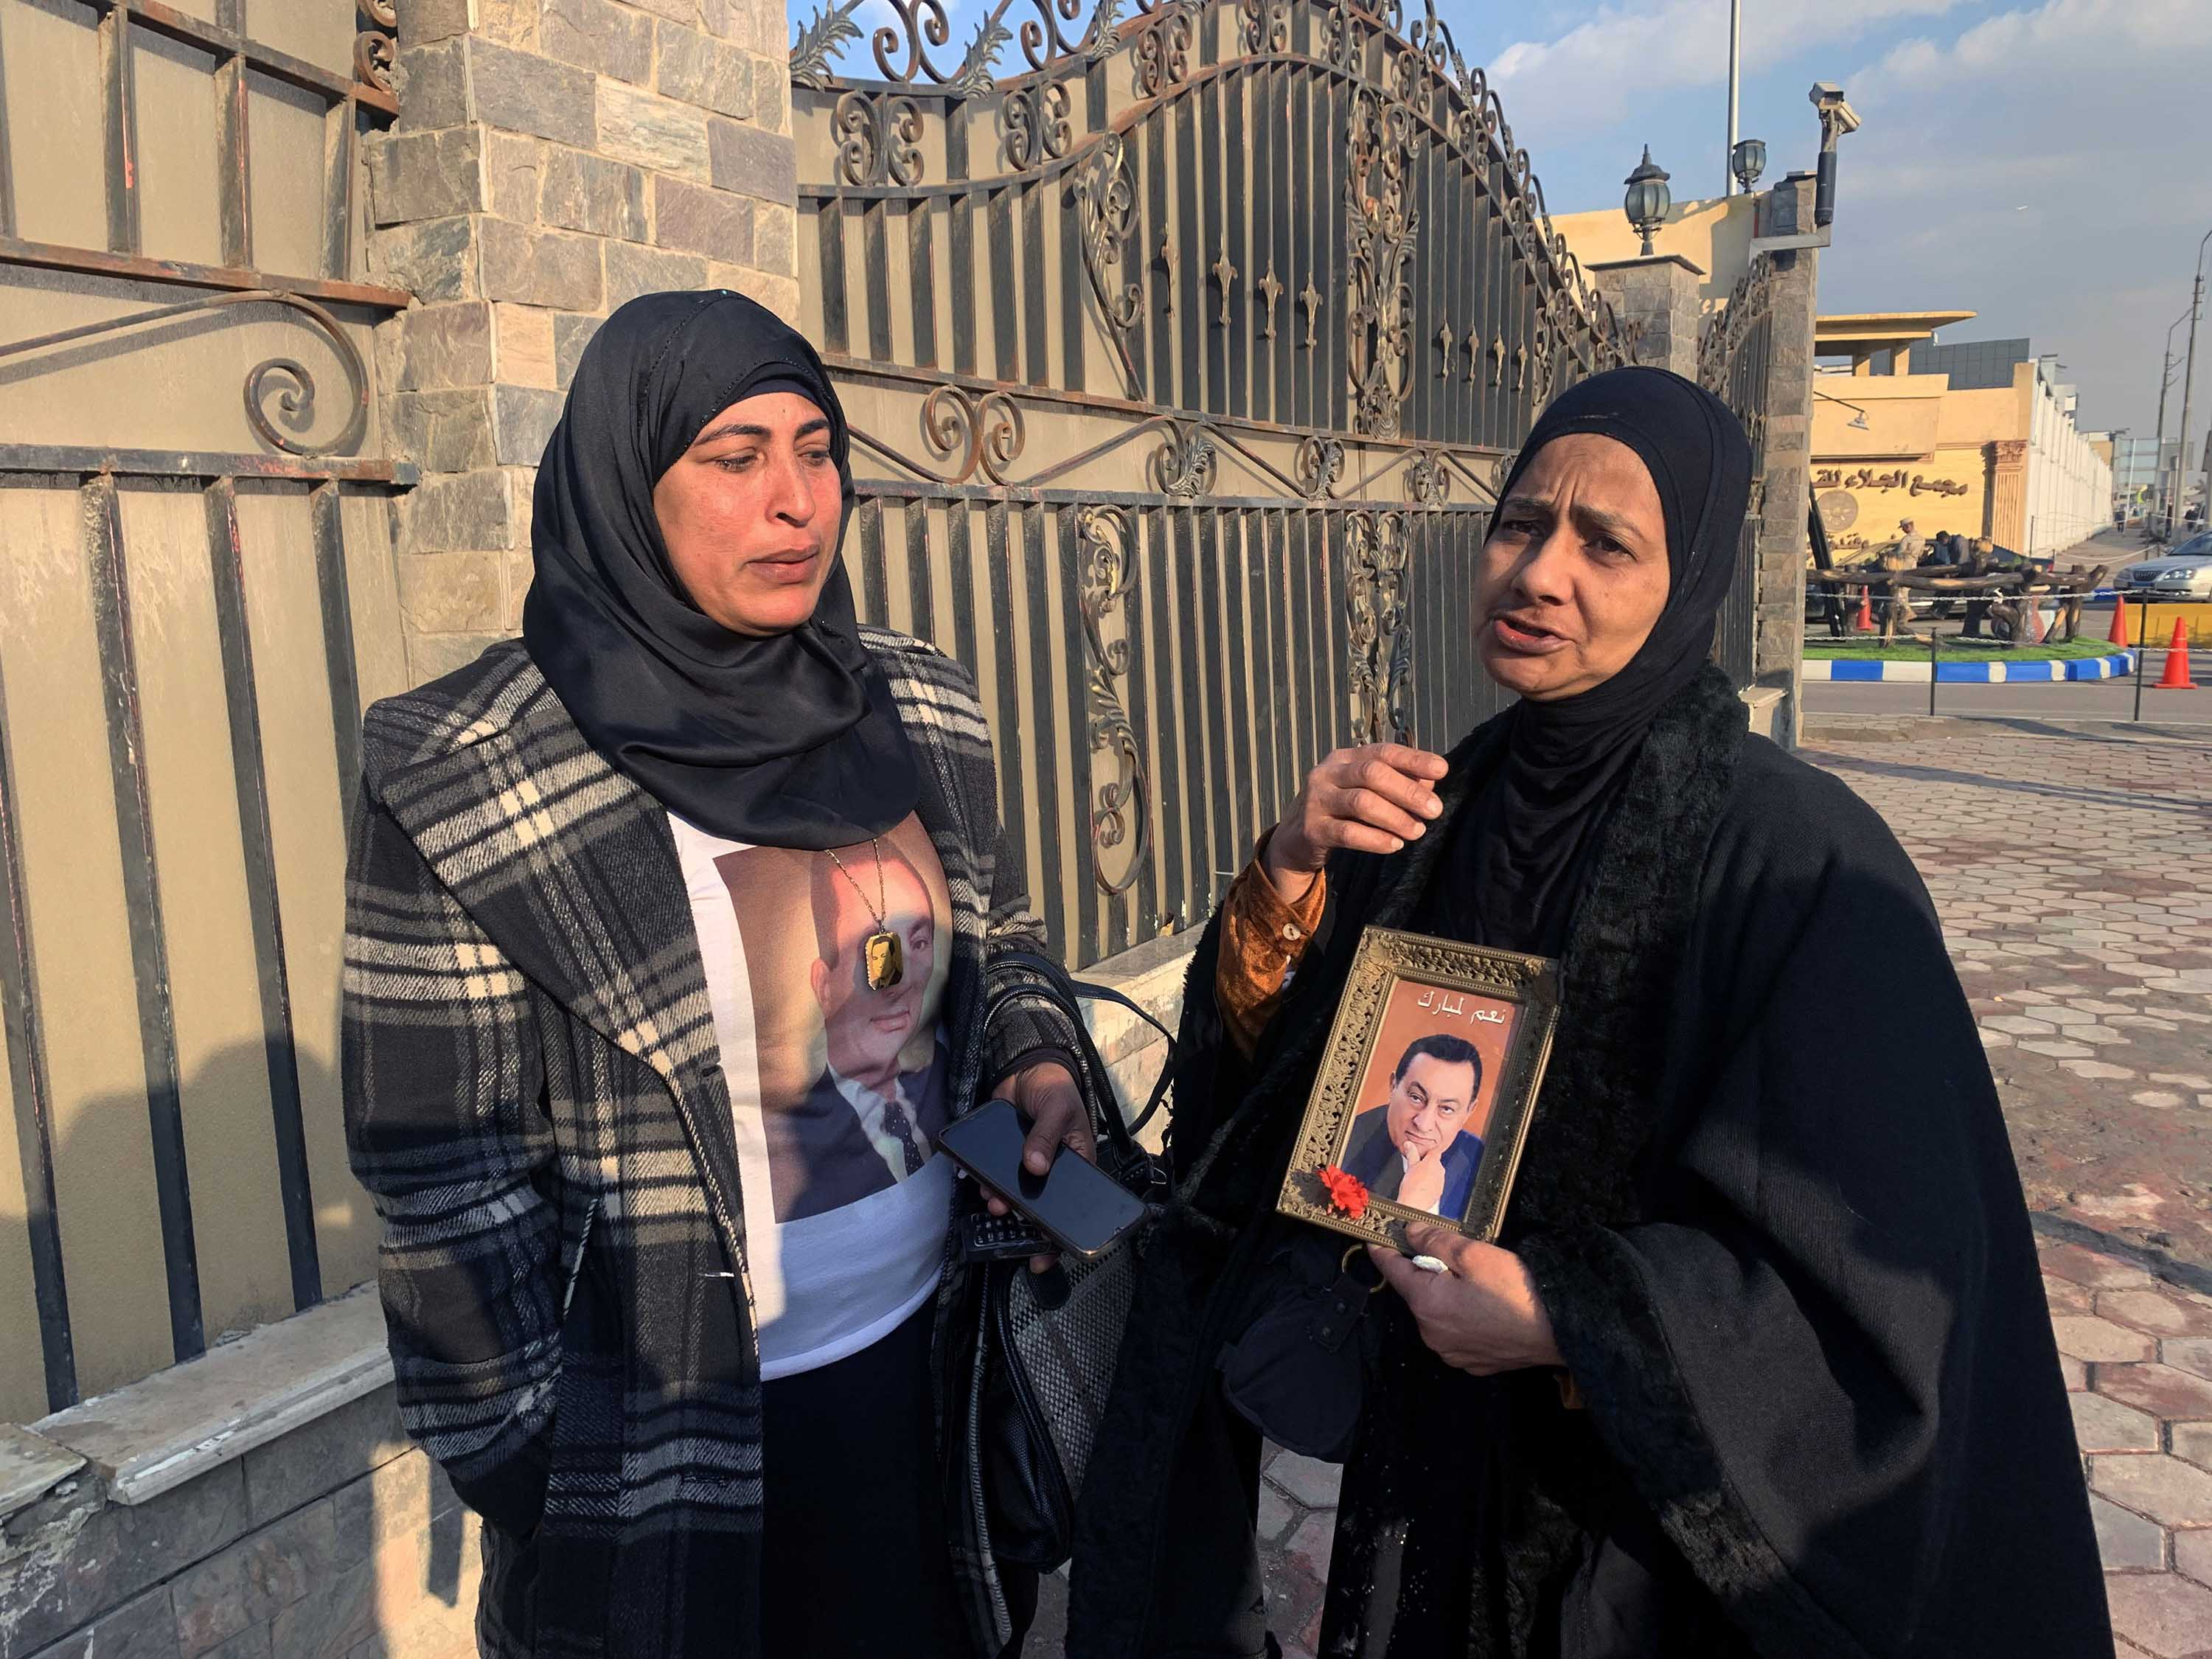 Supporters of former president Hosni Mubarak hold pictures of him outside a military hospital in Cairo on Tuesday, following the news of his death.